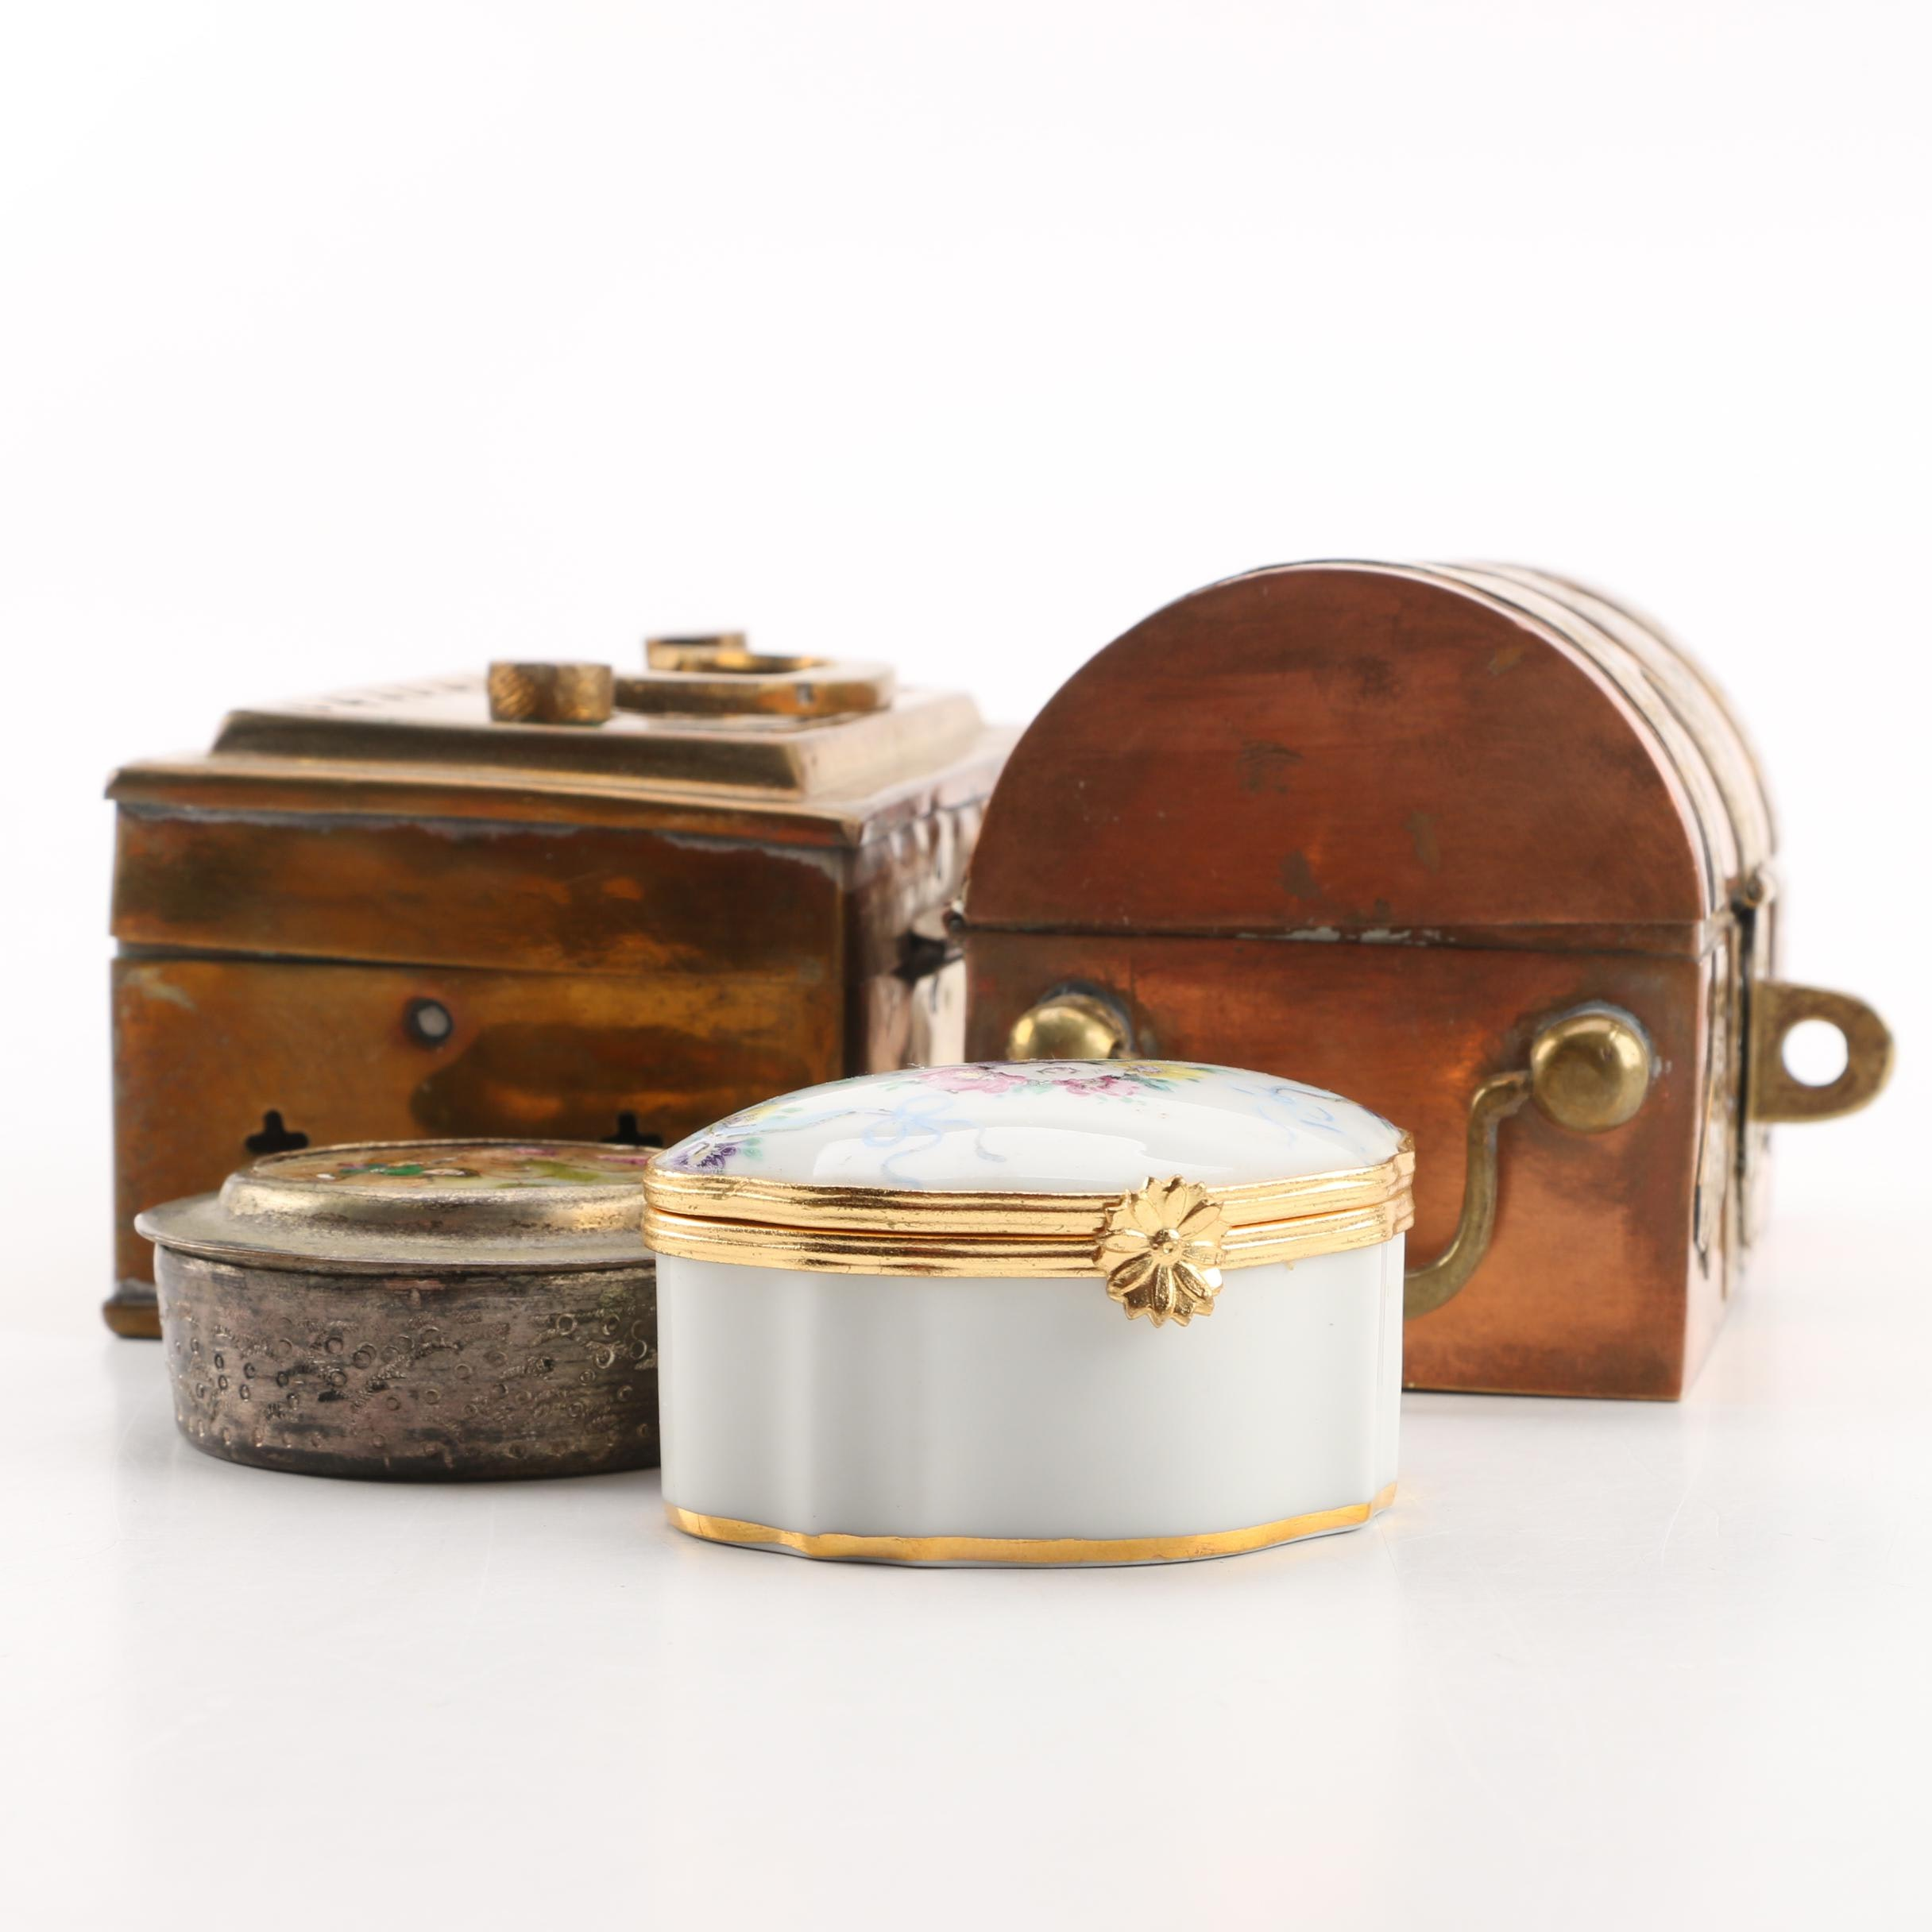 Assorted Metal and Ceramic Trinket Boxes